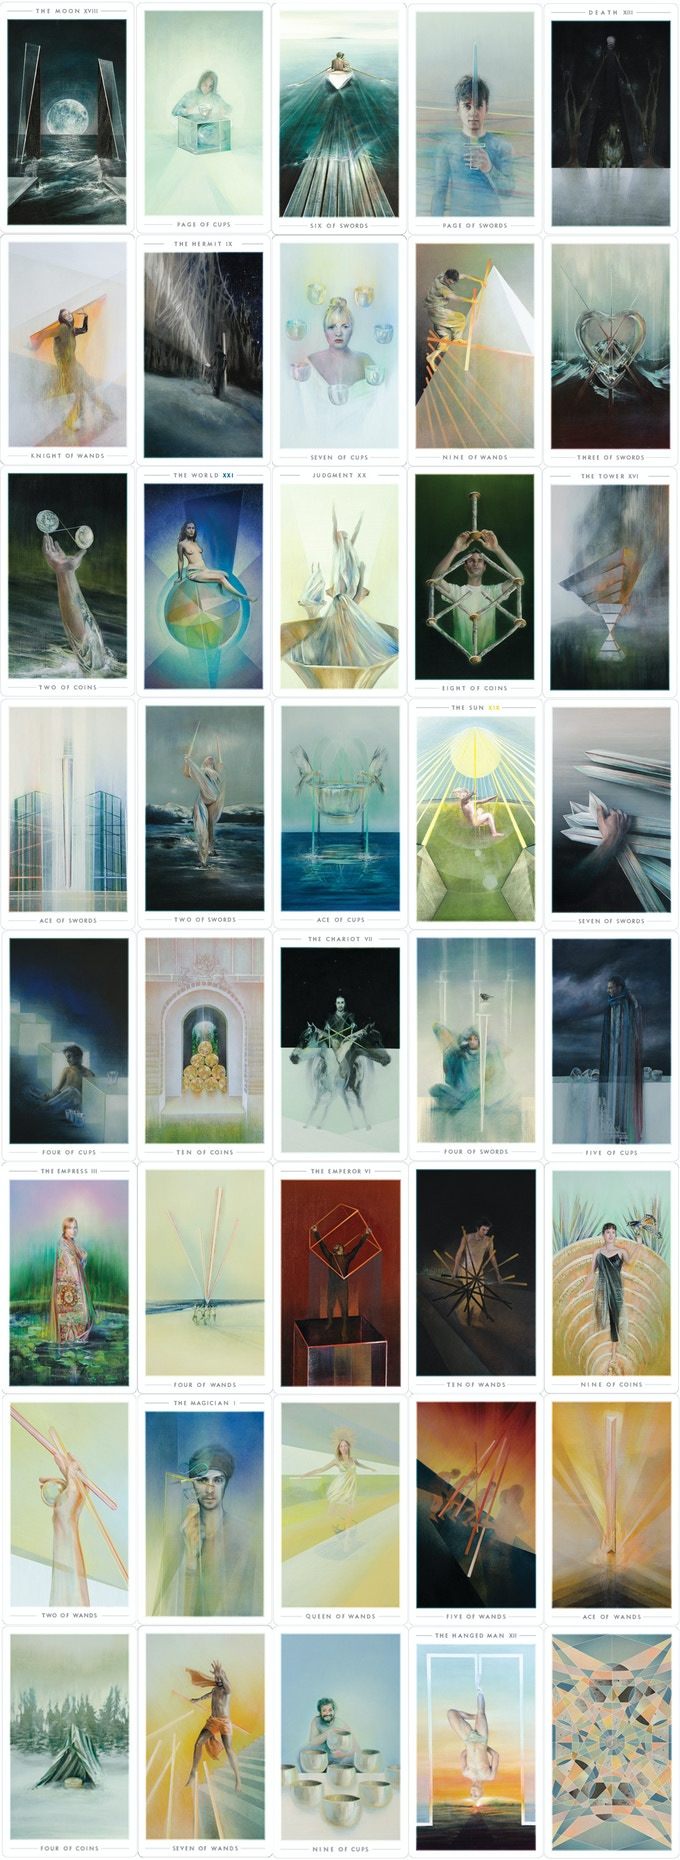 40-Card Preview of The Fountain Tarot (79 Cards Total)